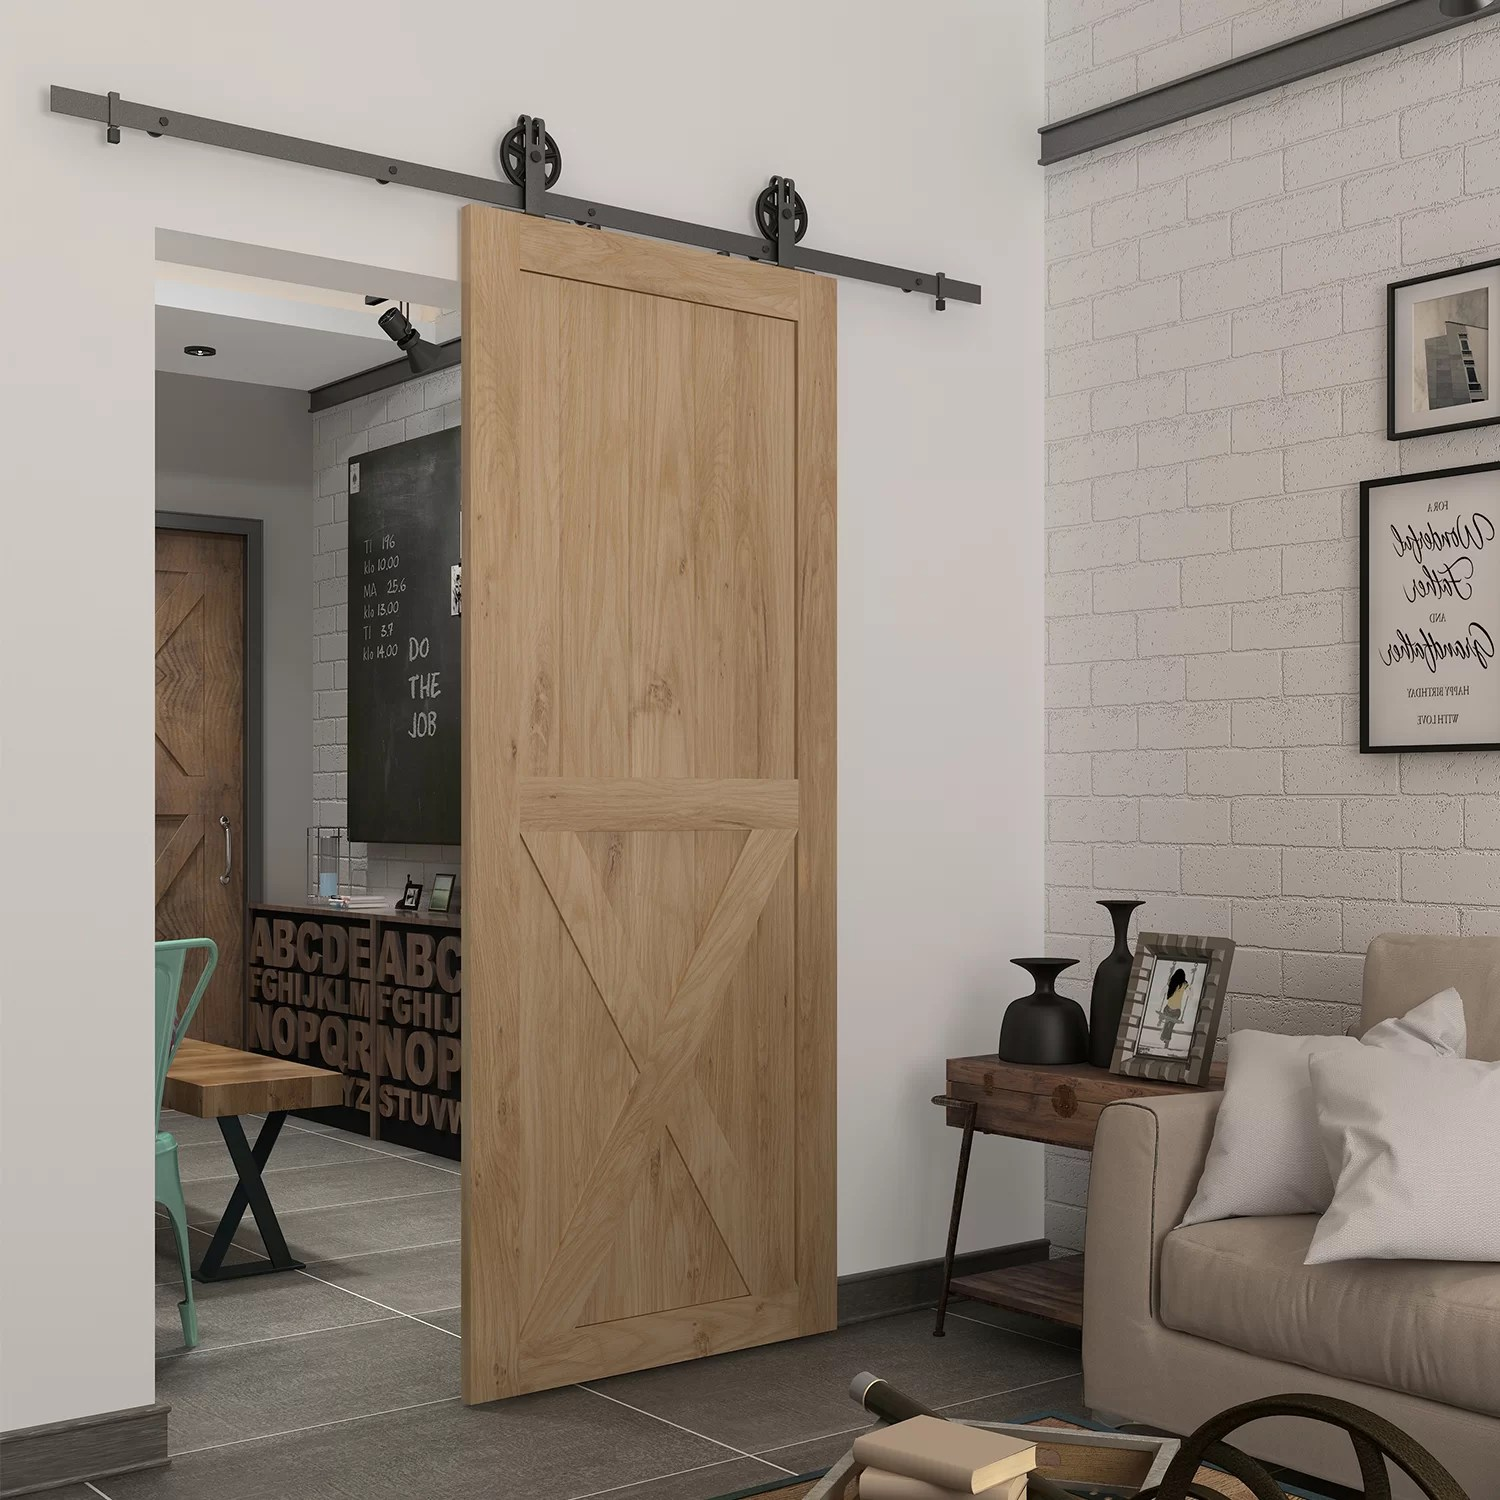 Colonial Elegance Paneled Wood Unfinished Half Cross Barn Door Without Installation Hardware Kit Reviews Wayfair